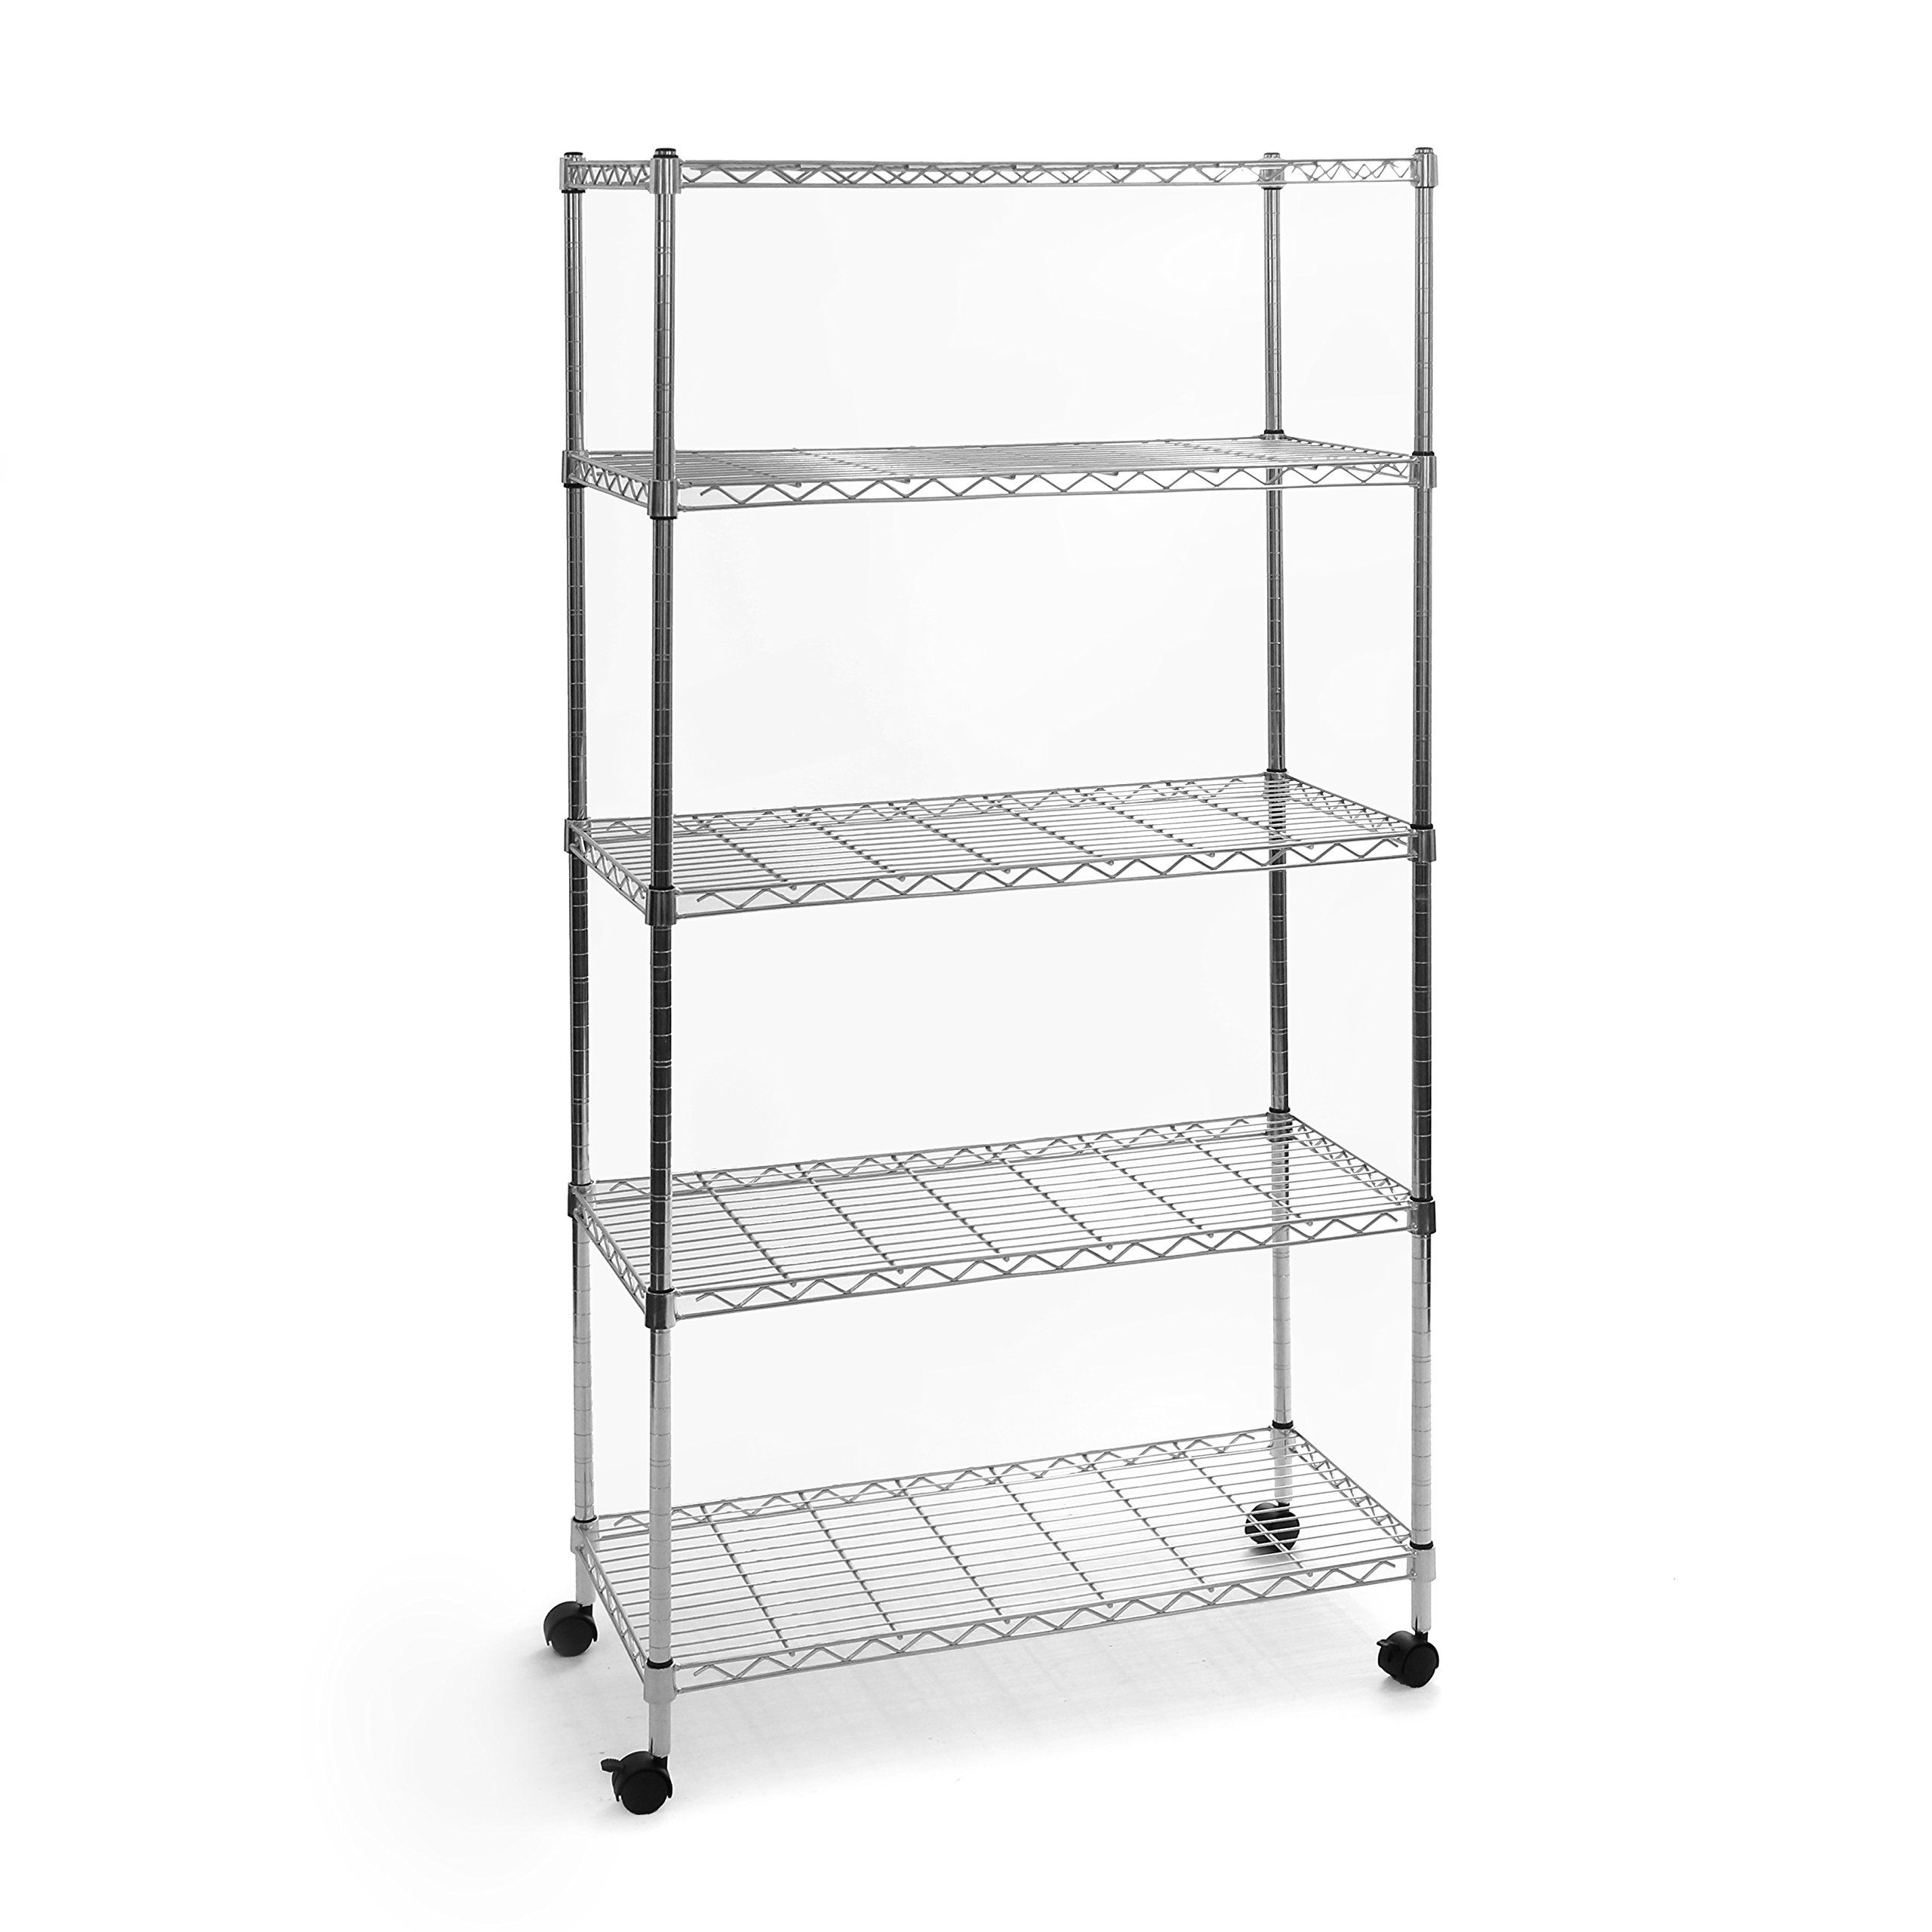 Amazon Com Seville Classics 5 Shelf 14 Inch By 30 Inch By 60 Inch Shelving System Garage Shelving Wire Shelving Metal Shelving Units Shelving Racks